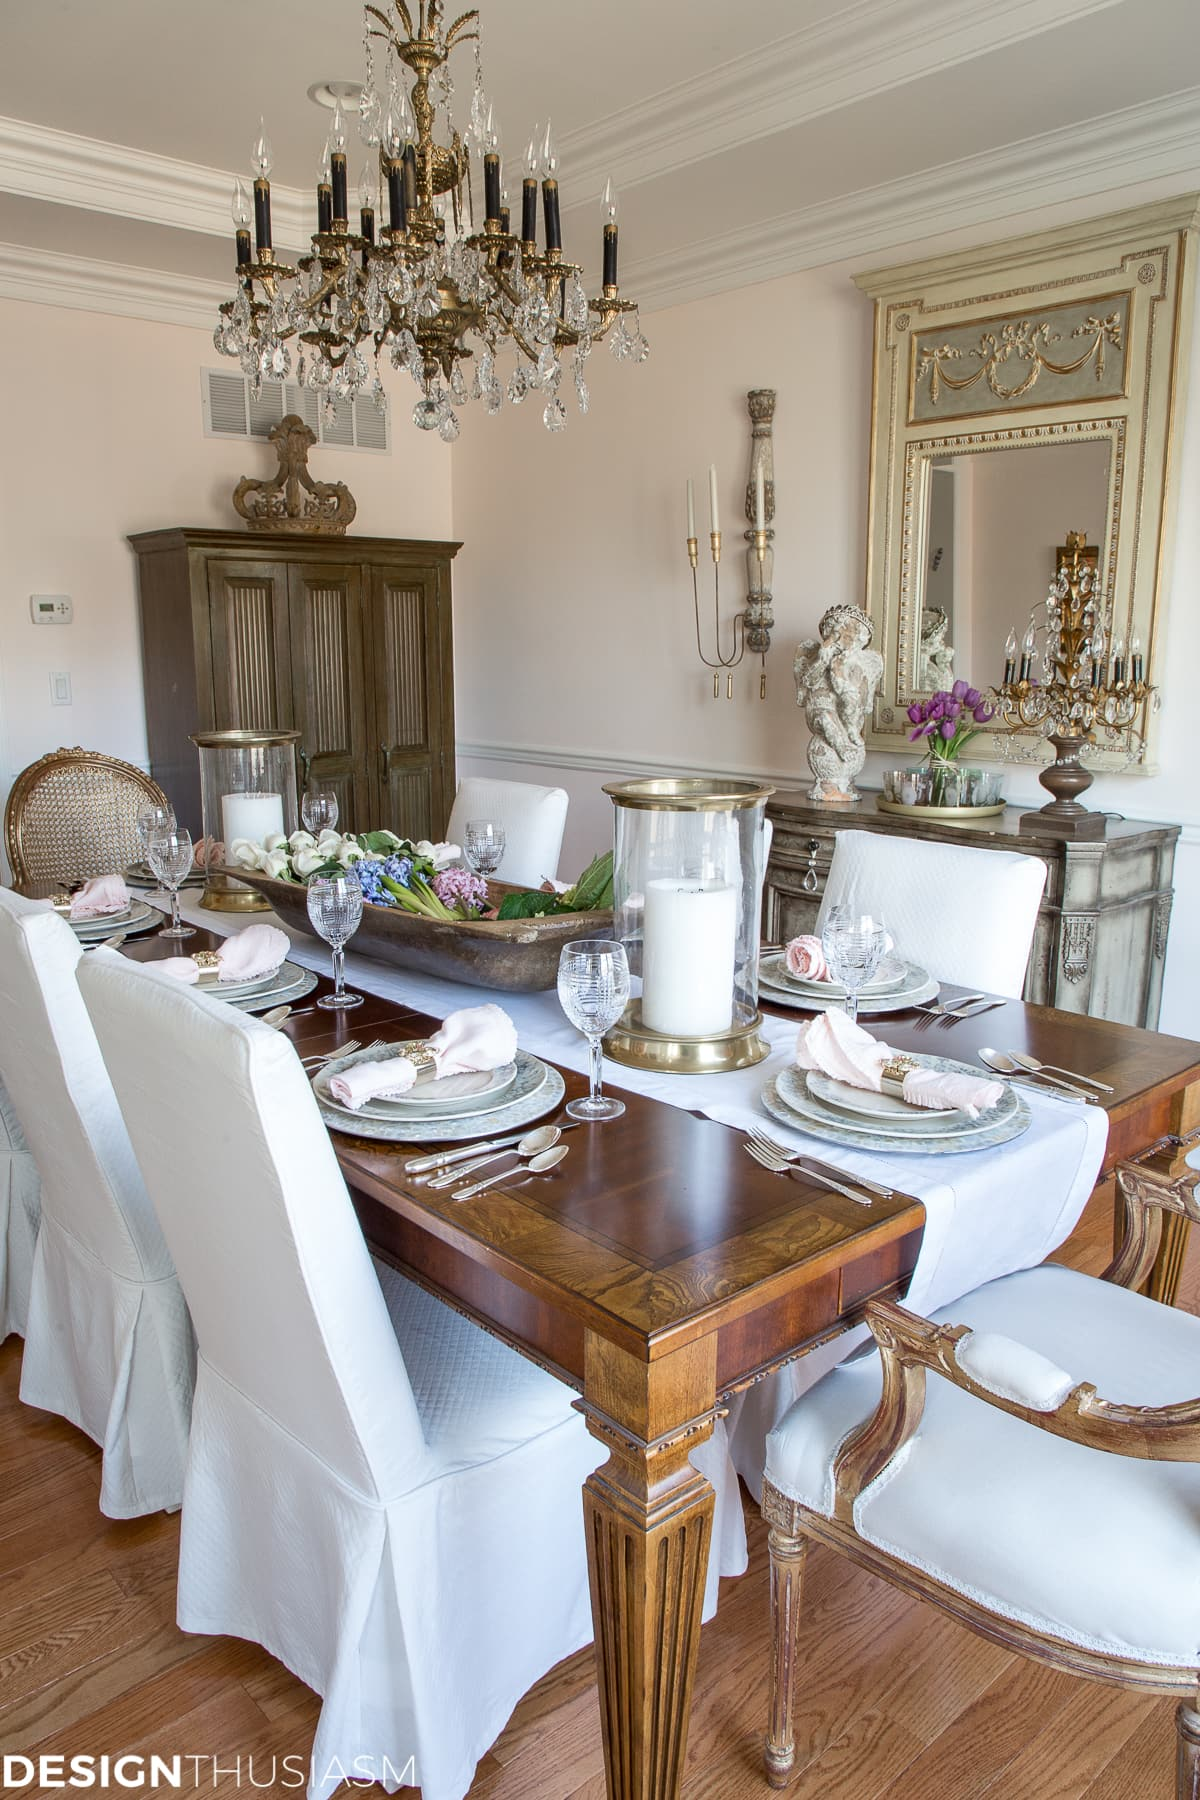 Simple Spring Decorating Ideas for the Dining Room